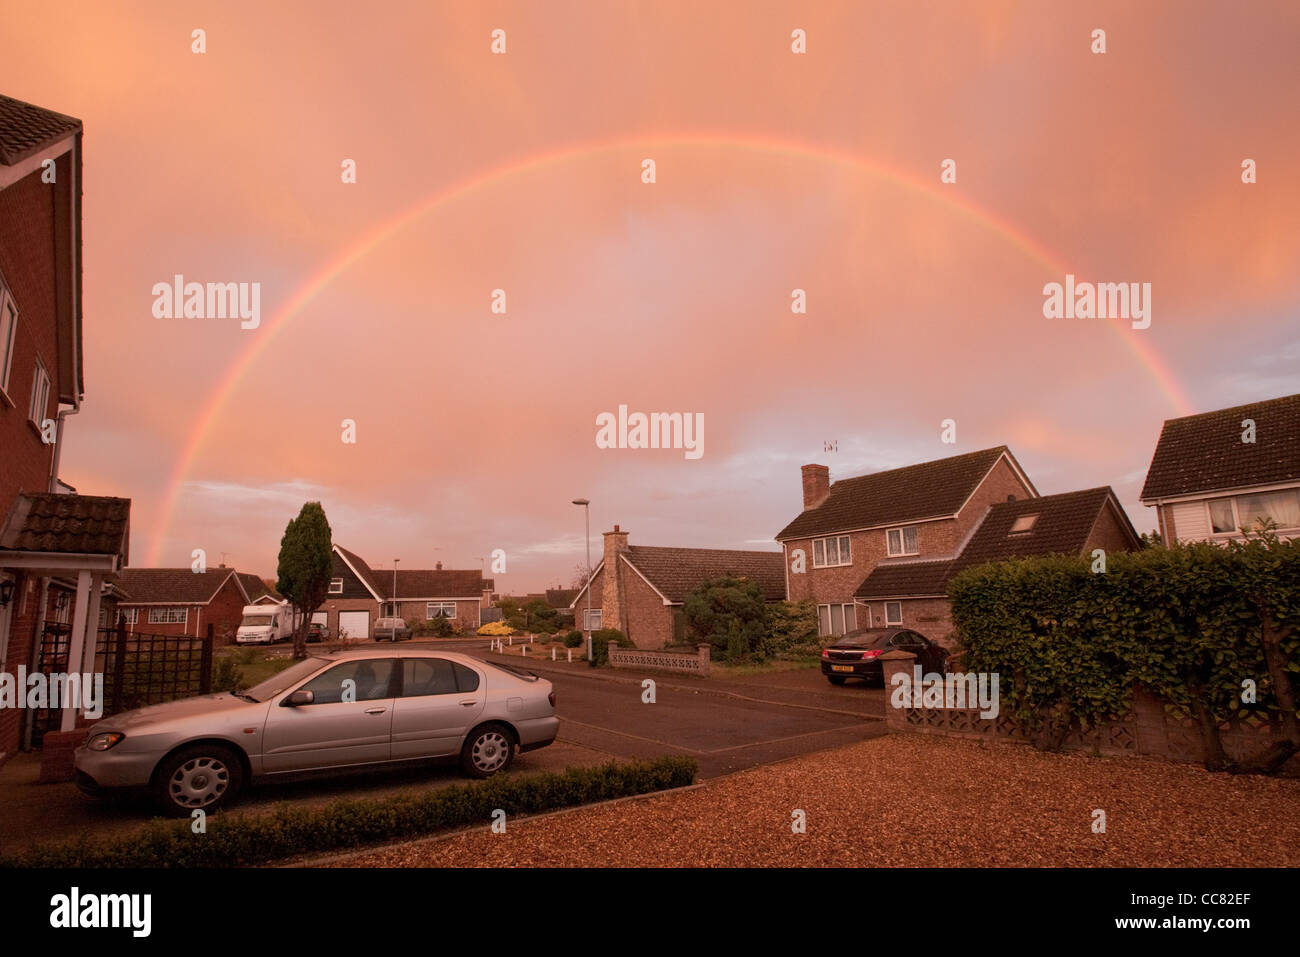 Genuine red orange sky (no filters) with complete rainbow arc created by freak, weird, unusual phenomenon weather - Stock Image